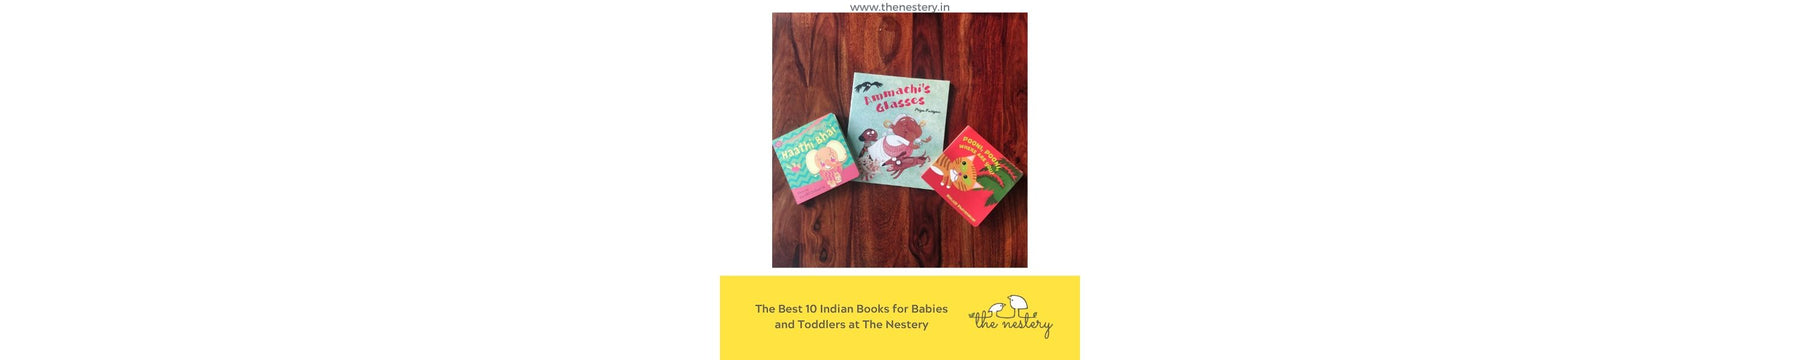 The Best 10 Indian Books for Babies and Toddlers at The Nestery